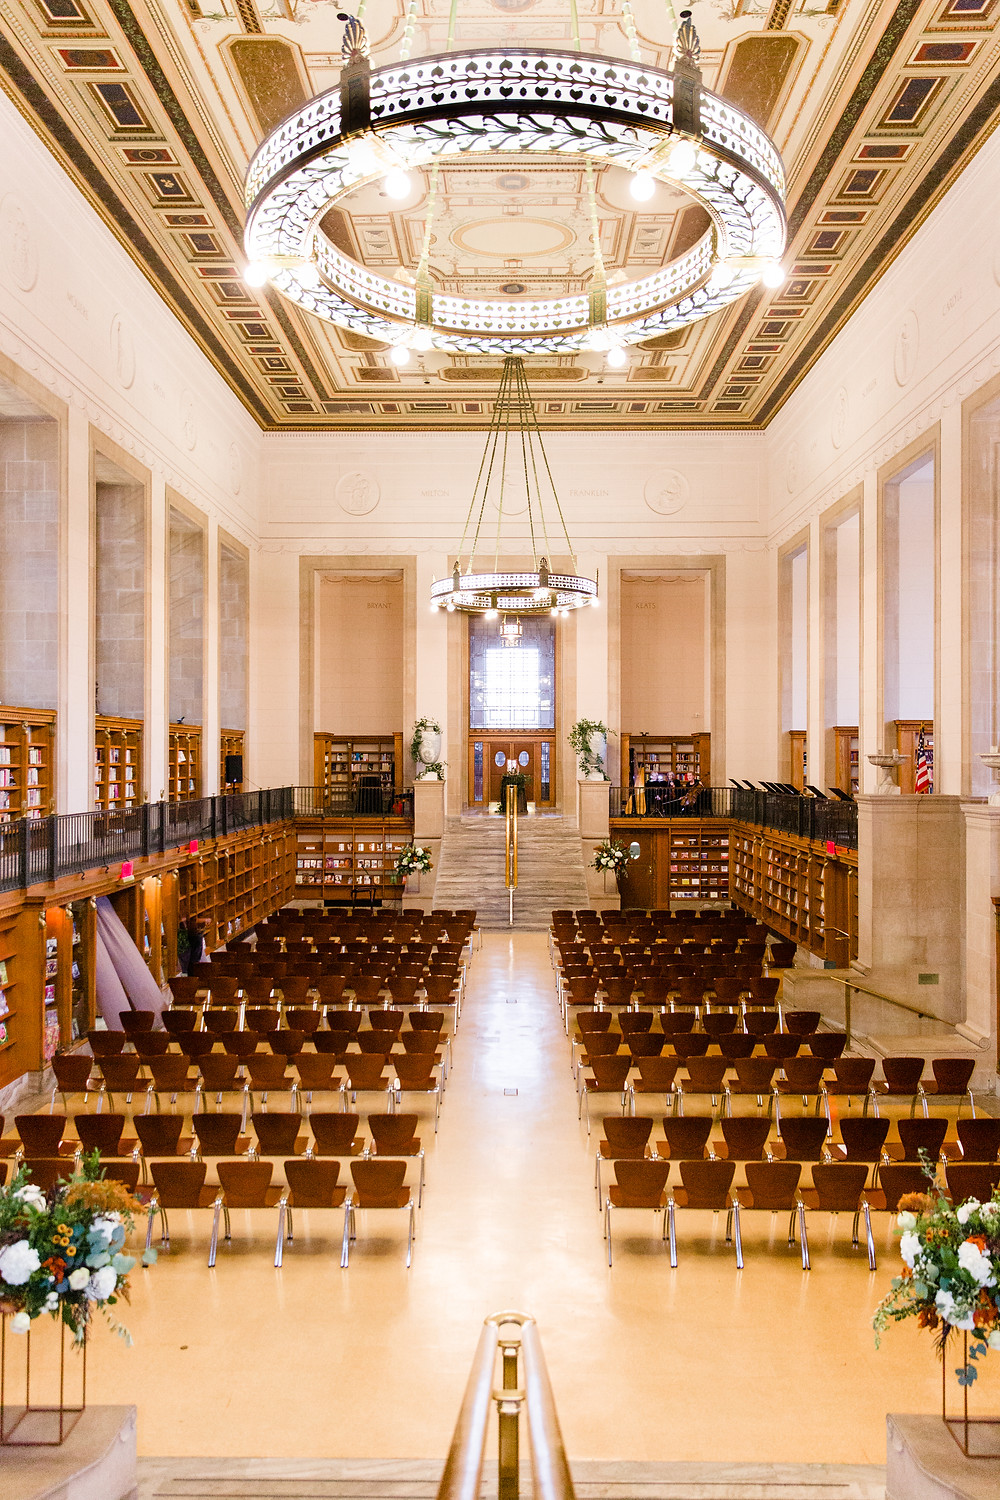 Simon-reading-room-indianapolis-library